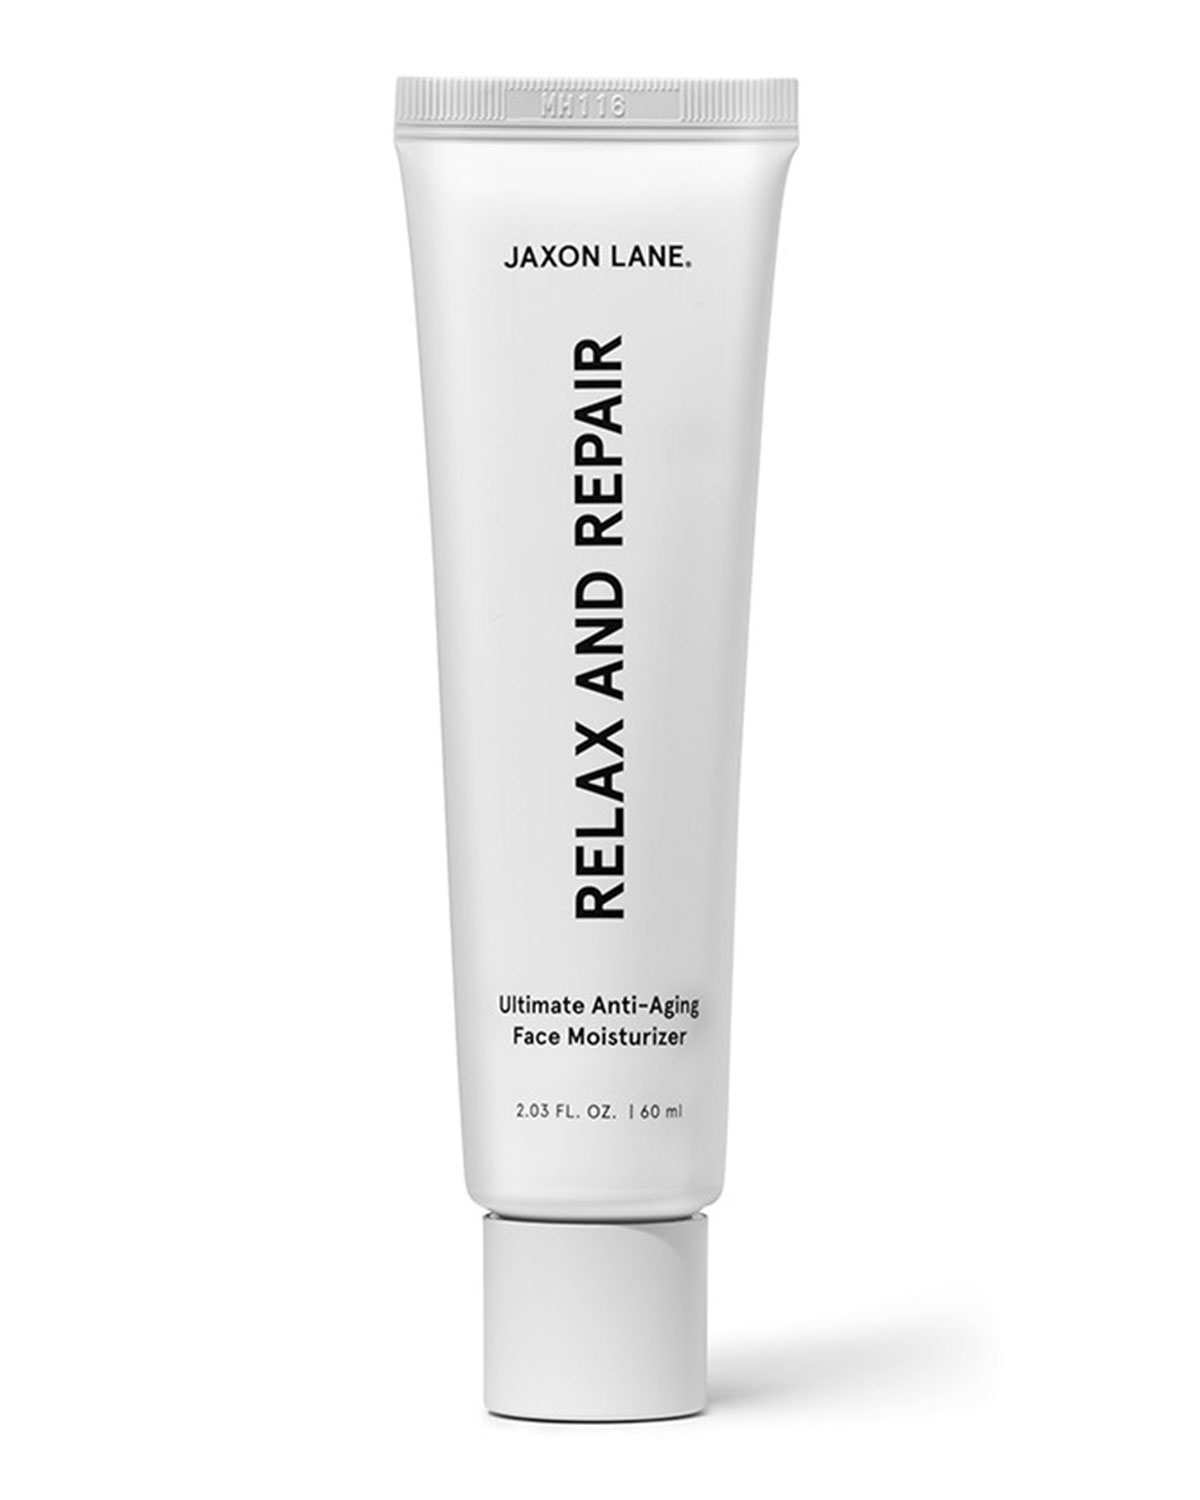 2.03 oz. Relax and Repair Anti-Aging Moisturizer